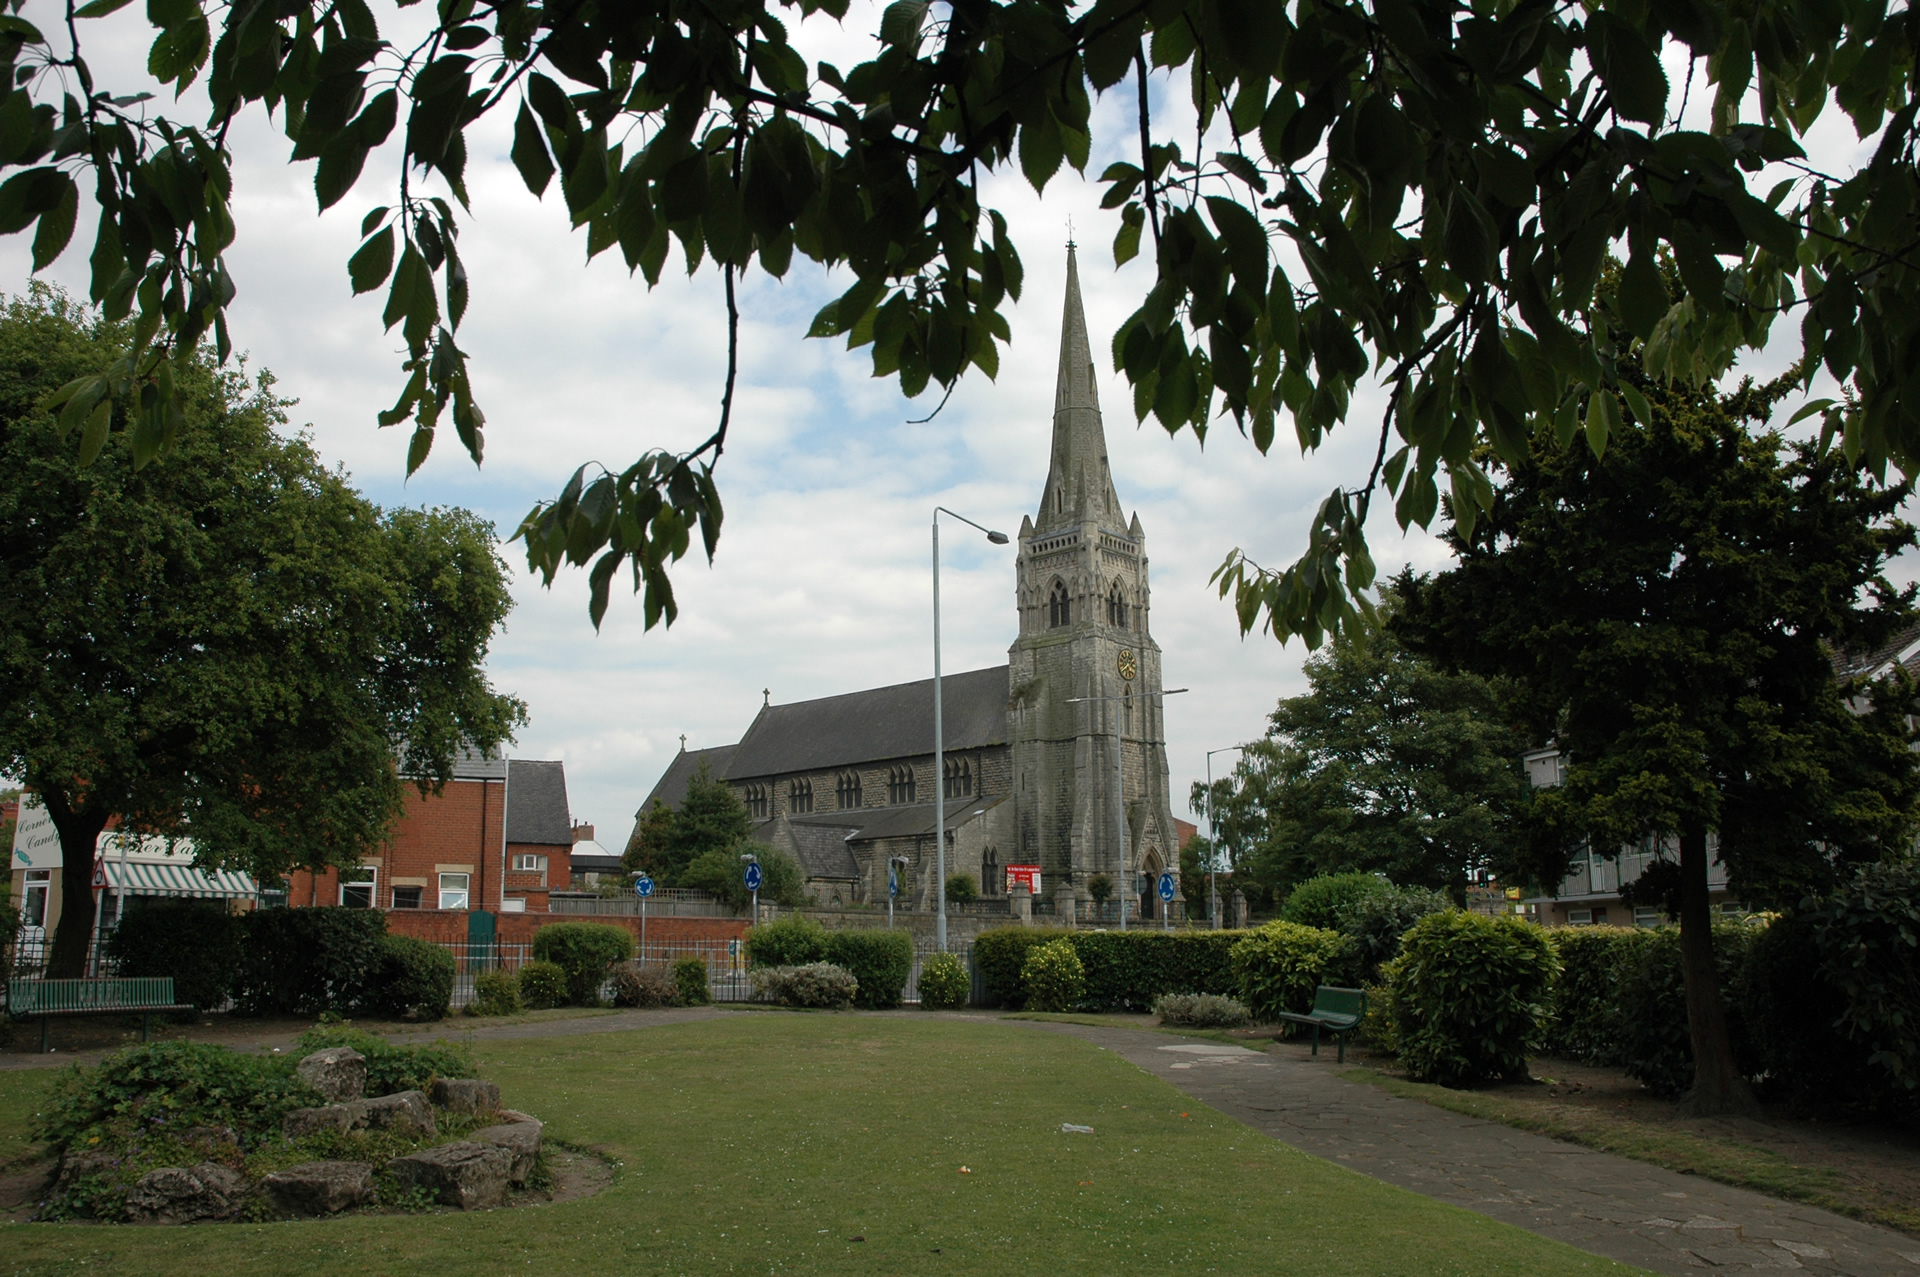 St John's Church, Worksop